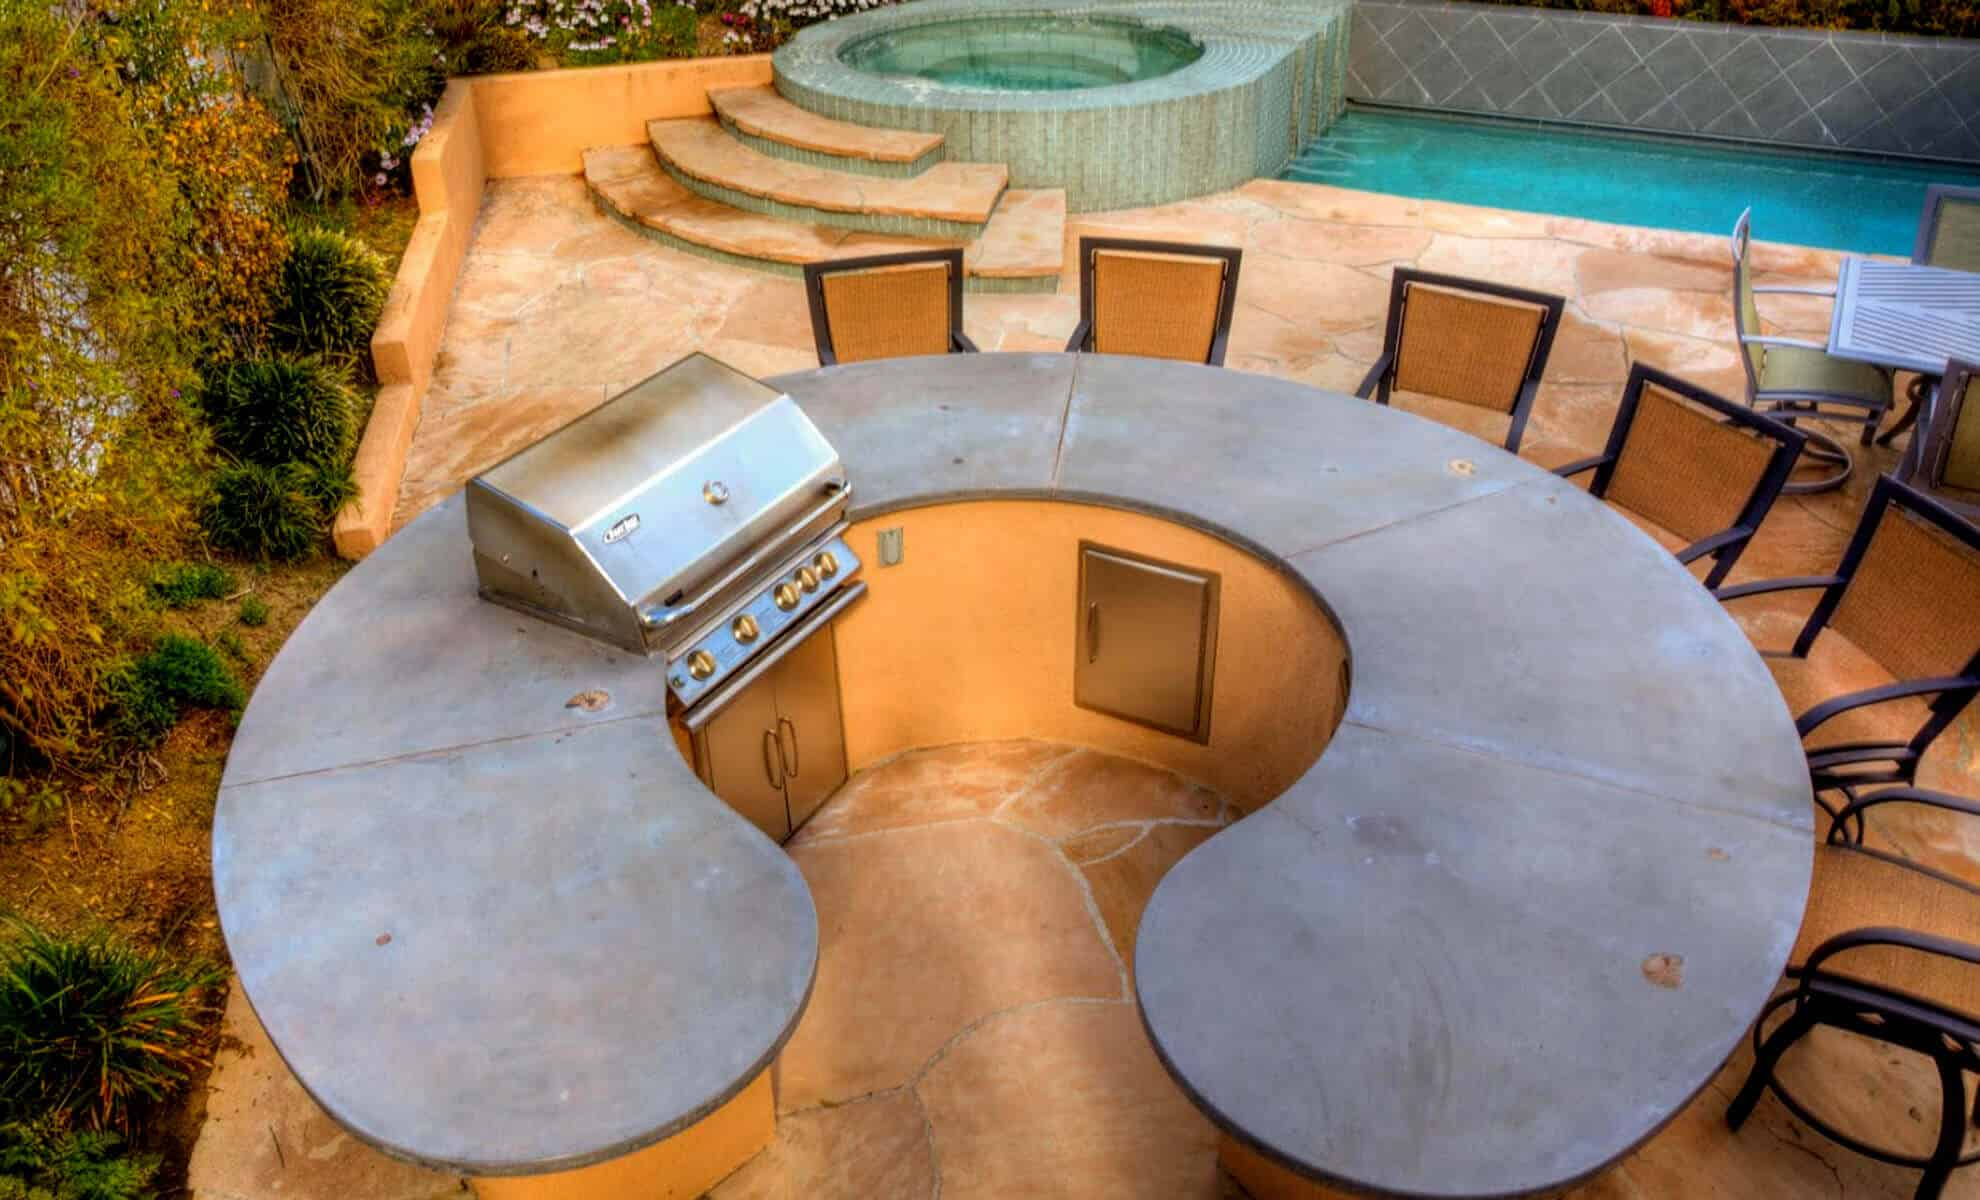 Del-Rancho-Pools-Stylish-Outdoor-Living-Portfolio-05